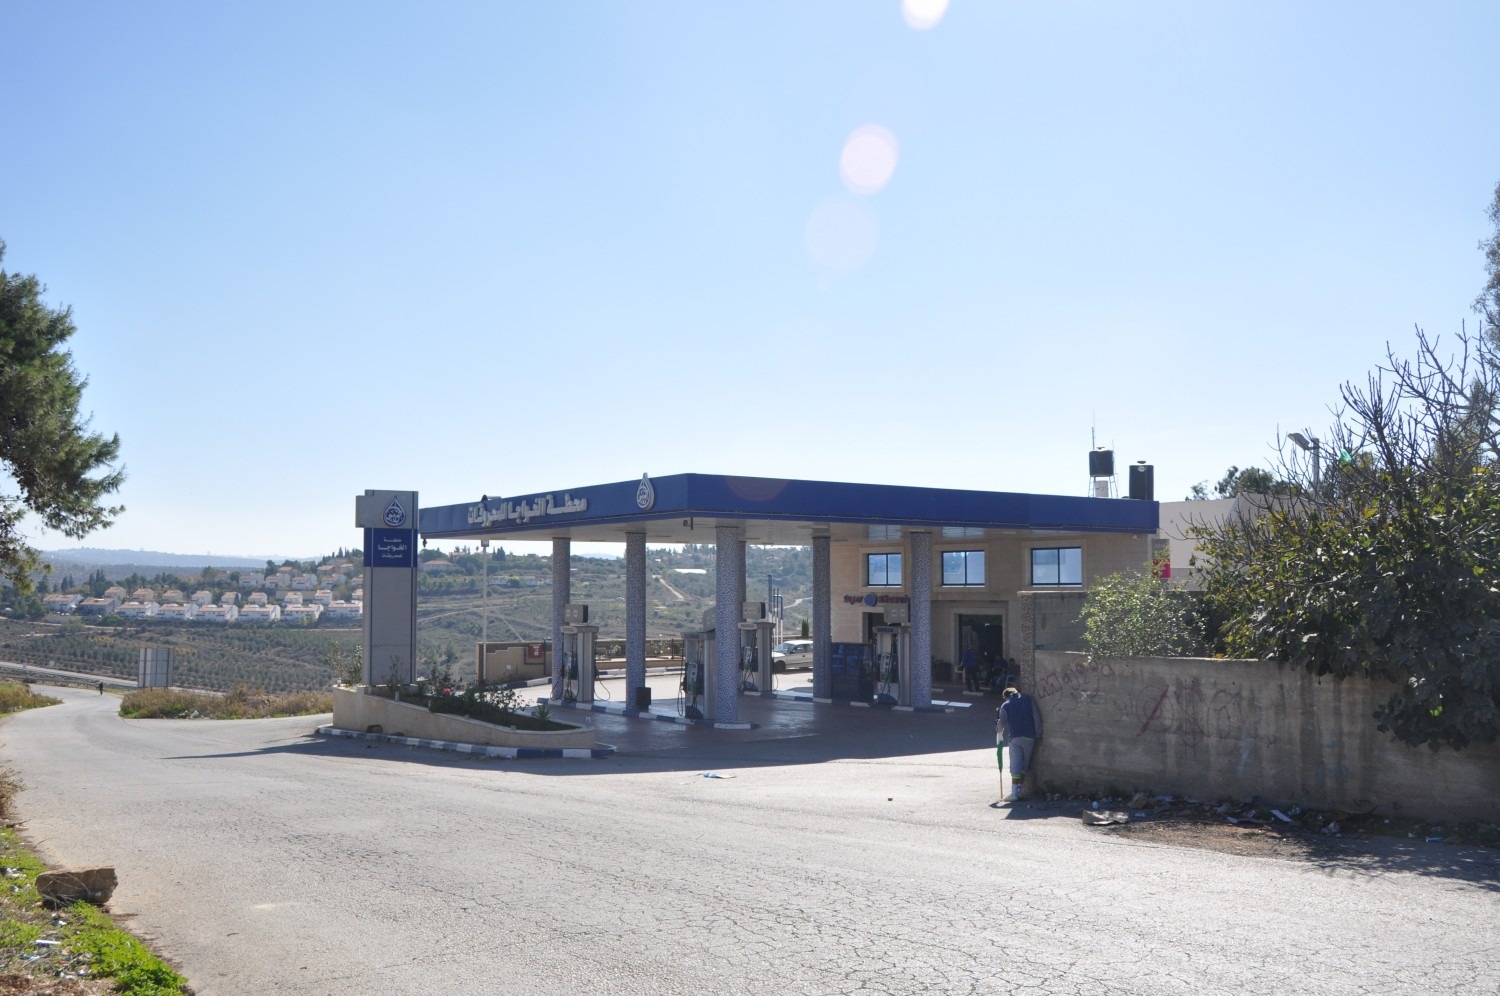 Gas station meeting point